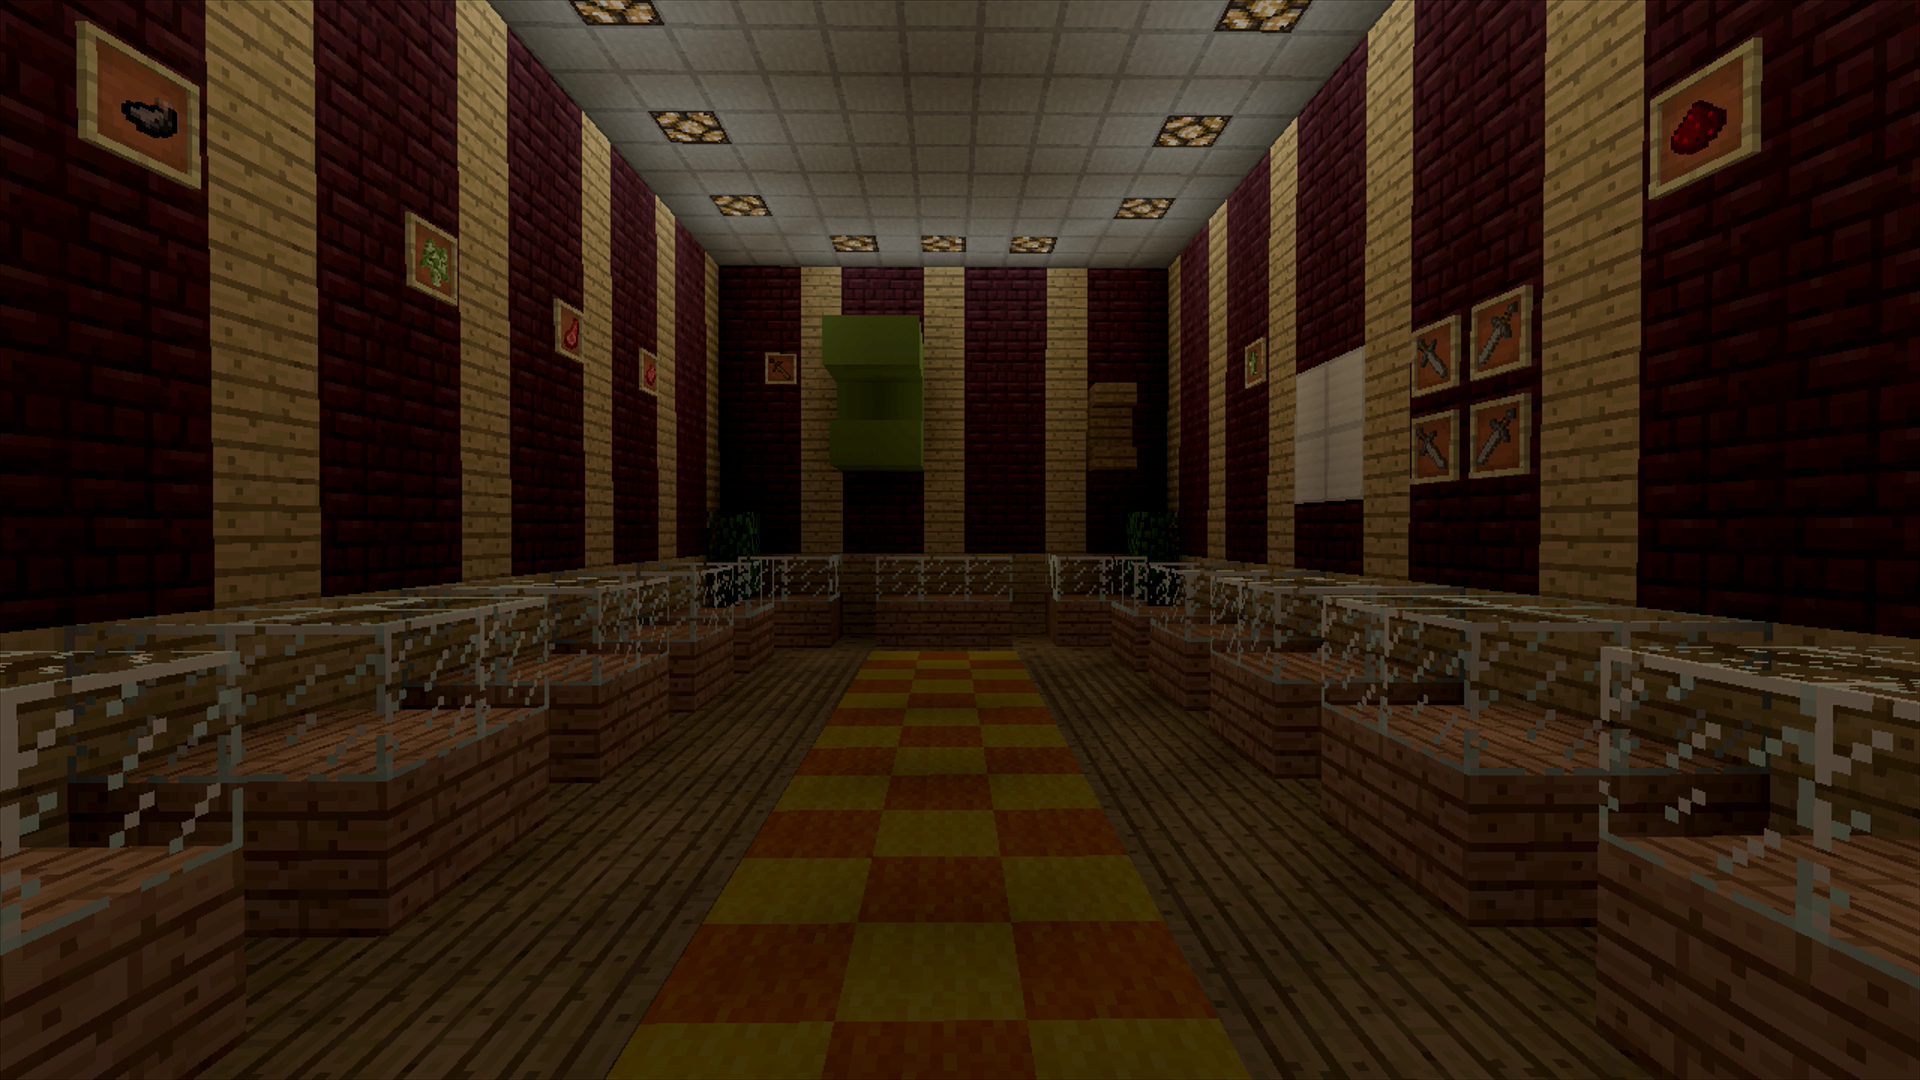 TRA Wii players will know this exclusive trophy room.